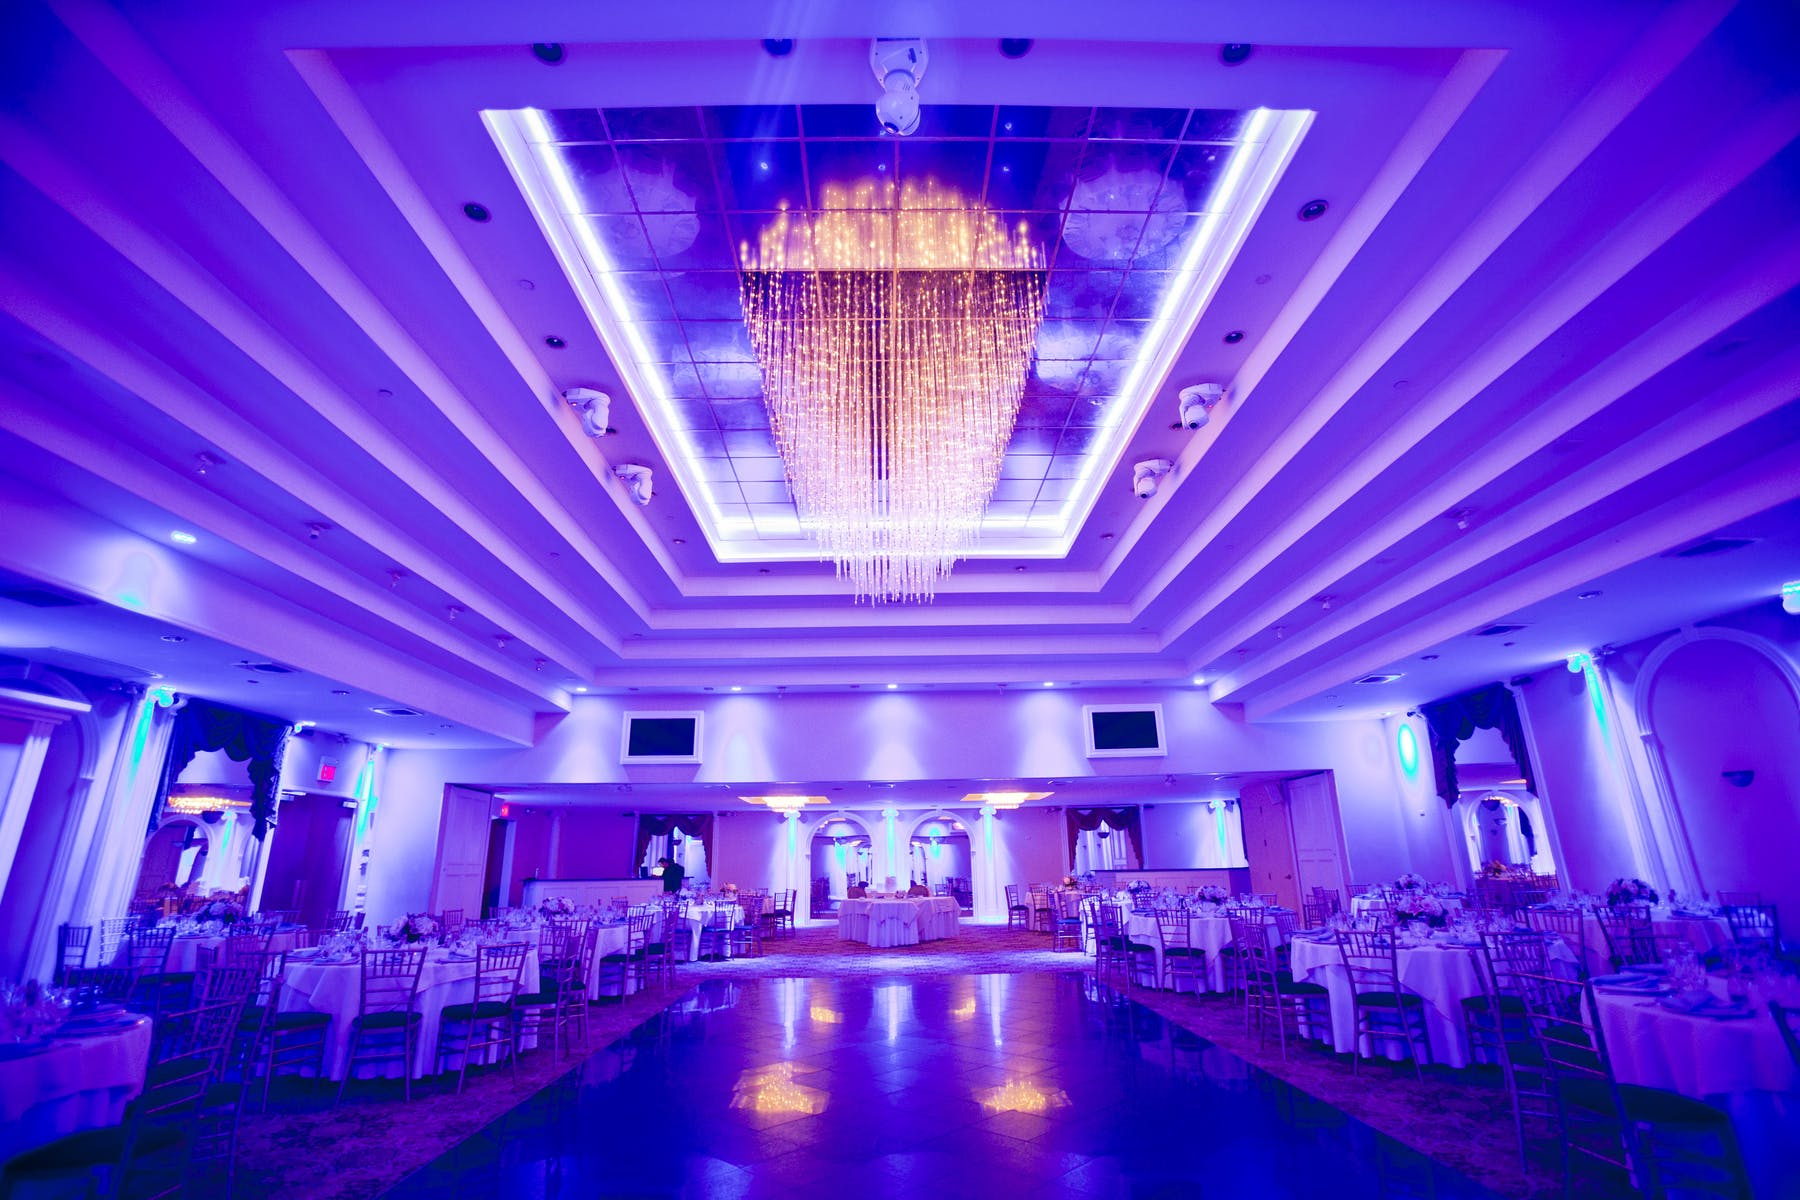 a large room filled with wedding decorations